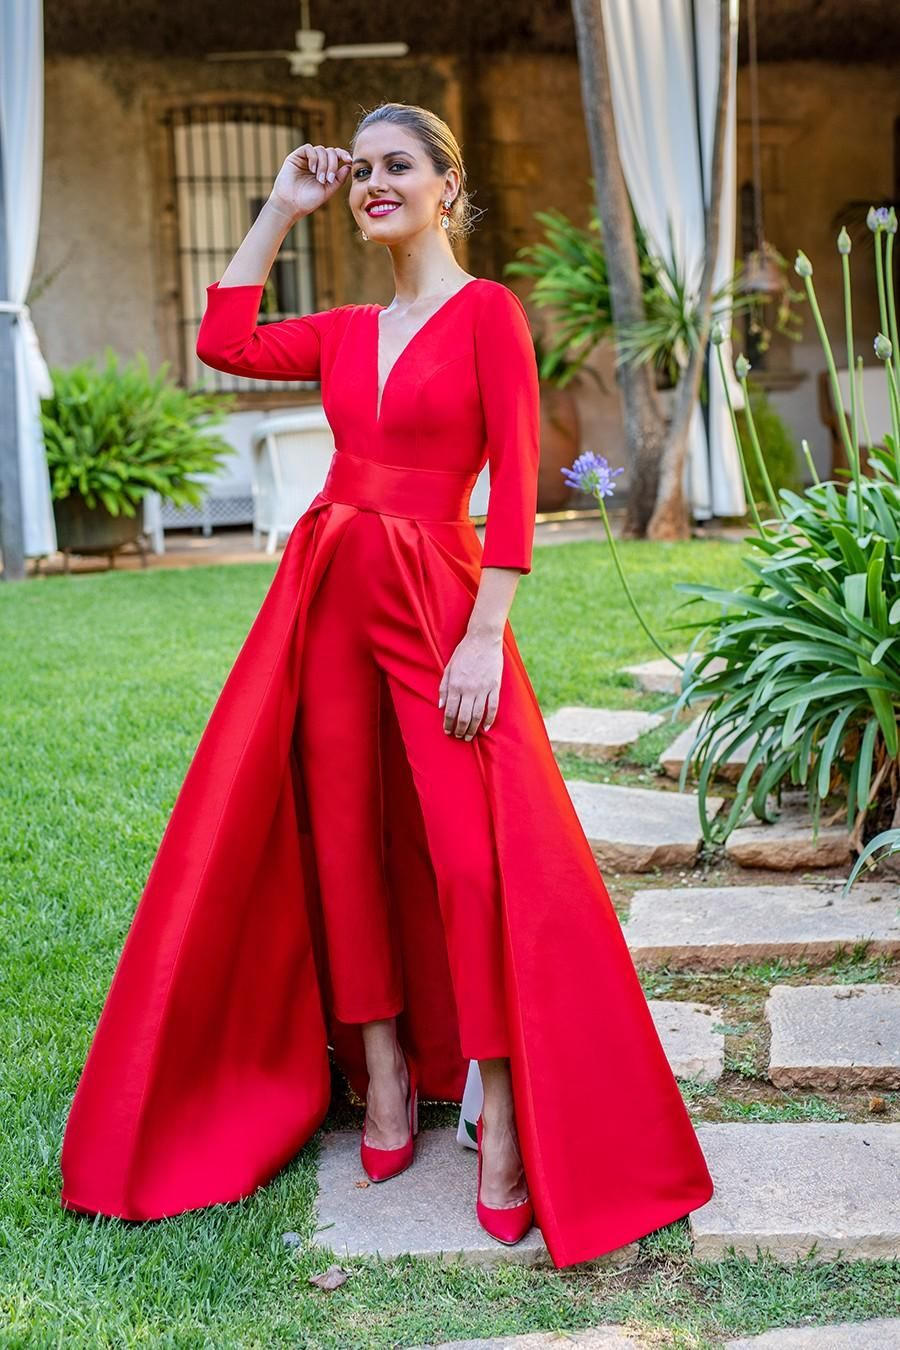 07091a9d640 Krikor Jabotian Red Jumpsuits Formal Evening Dresses With Detachable Skirt  V Neck Prom Dresses Party Wear Pants For Women Custom Made Gold Prom Dresses  Long ...